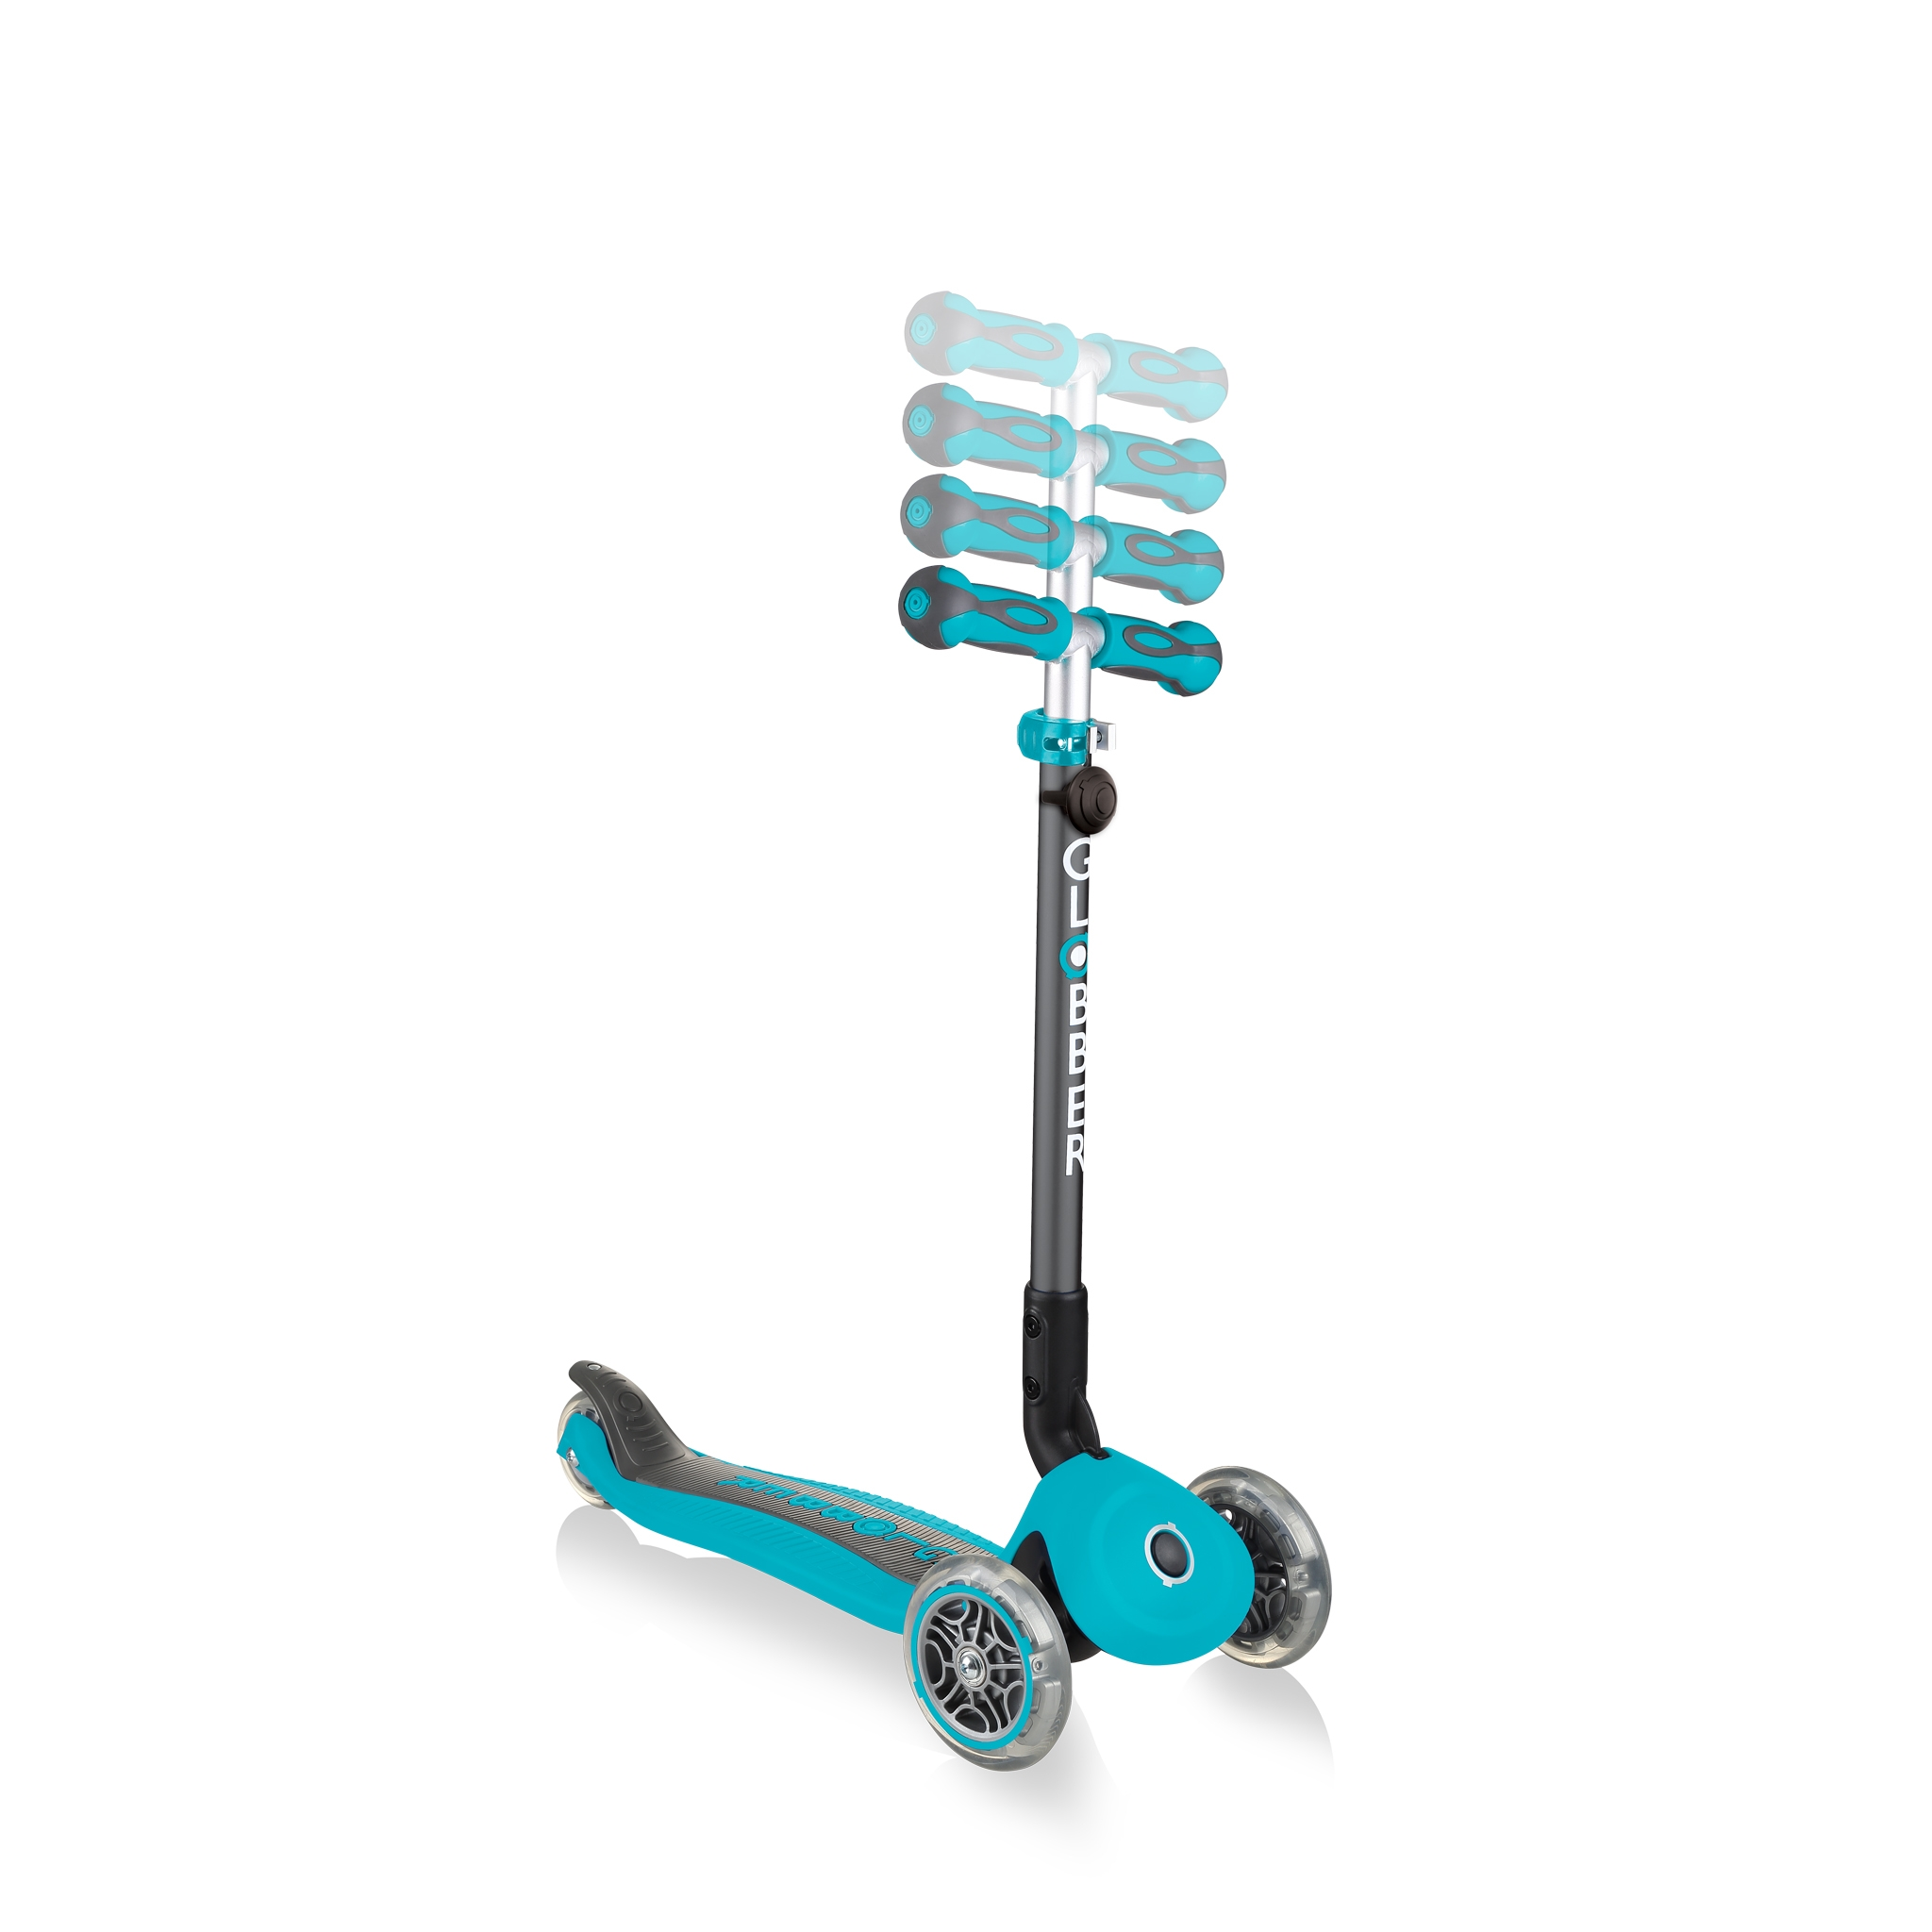 GO-UP-DELUXE-GO-UP-DELUXE-ride-on-walking-bike-scooter-with-4-height-adjustable-T-bar-teal 4